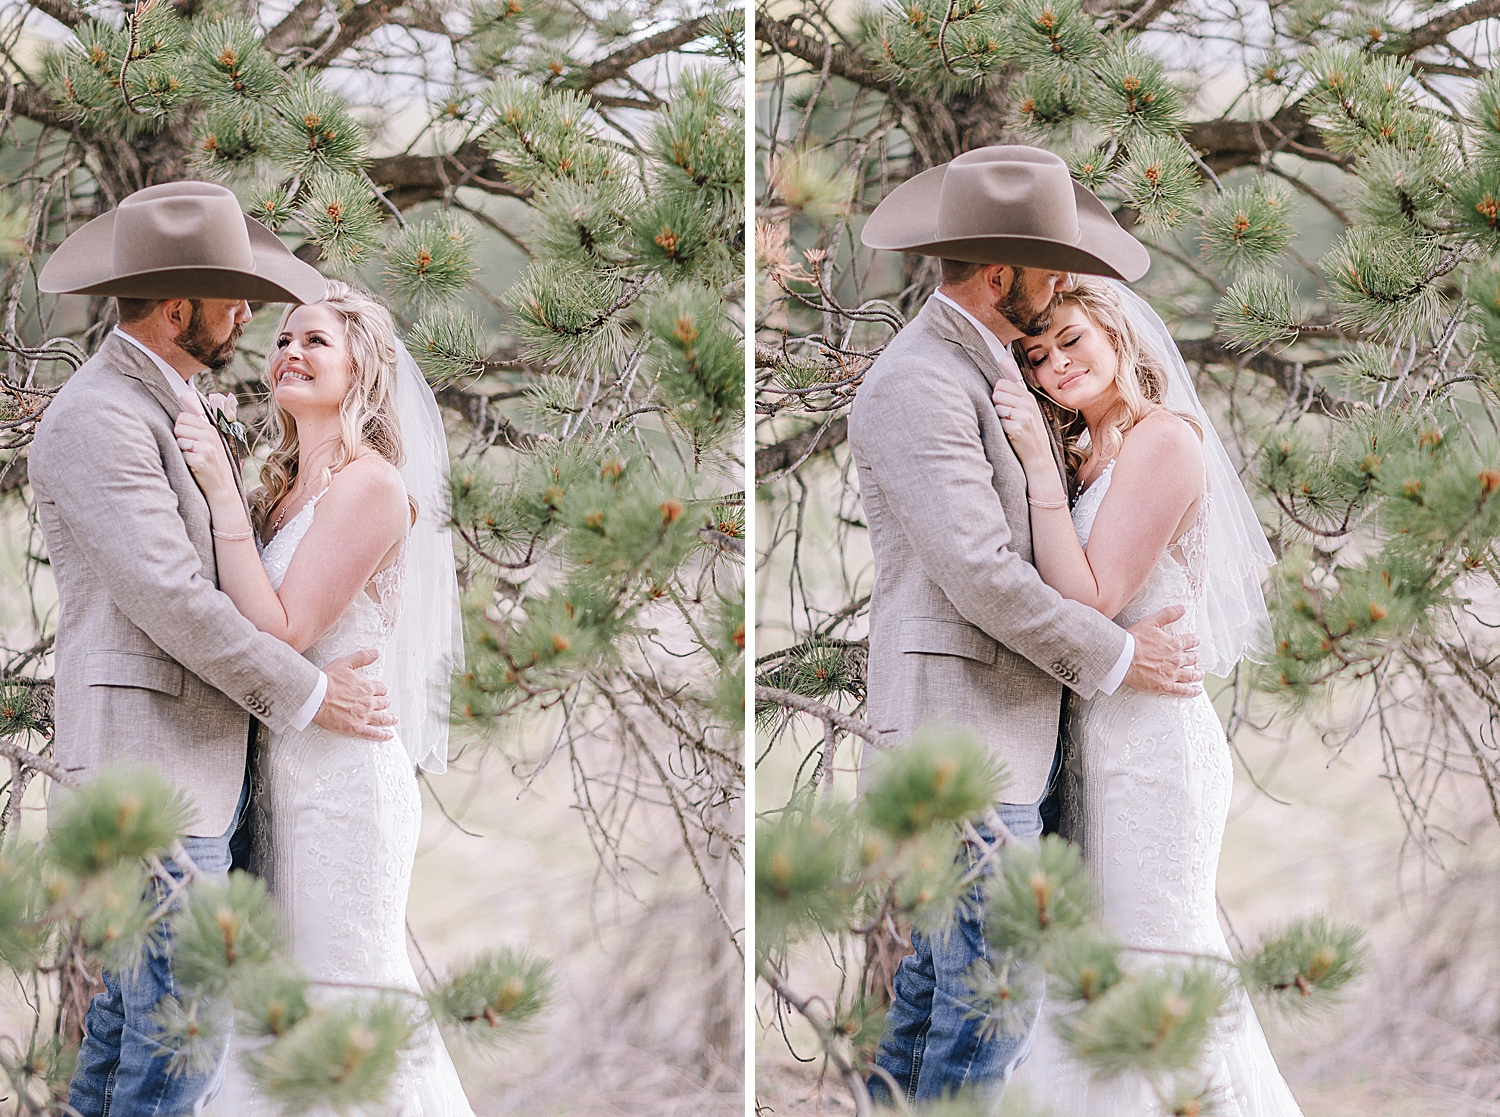 Carly-Barton-Photography-Rocky-Mountain-National-Park-Estes-Park-Wedding-Elopement_0004.jpg